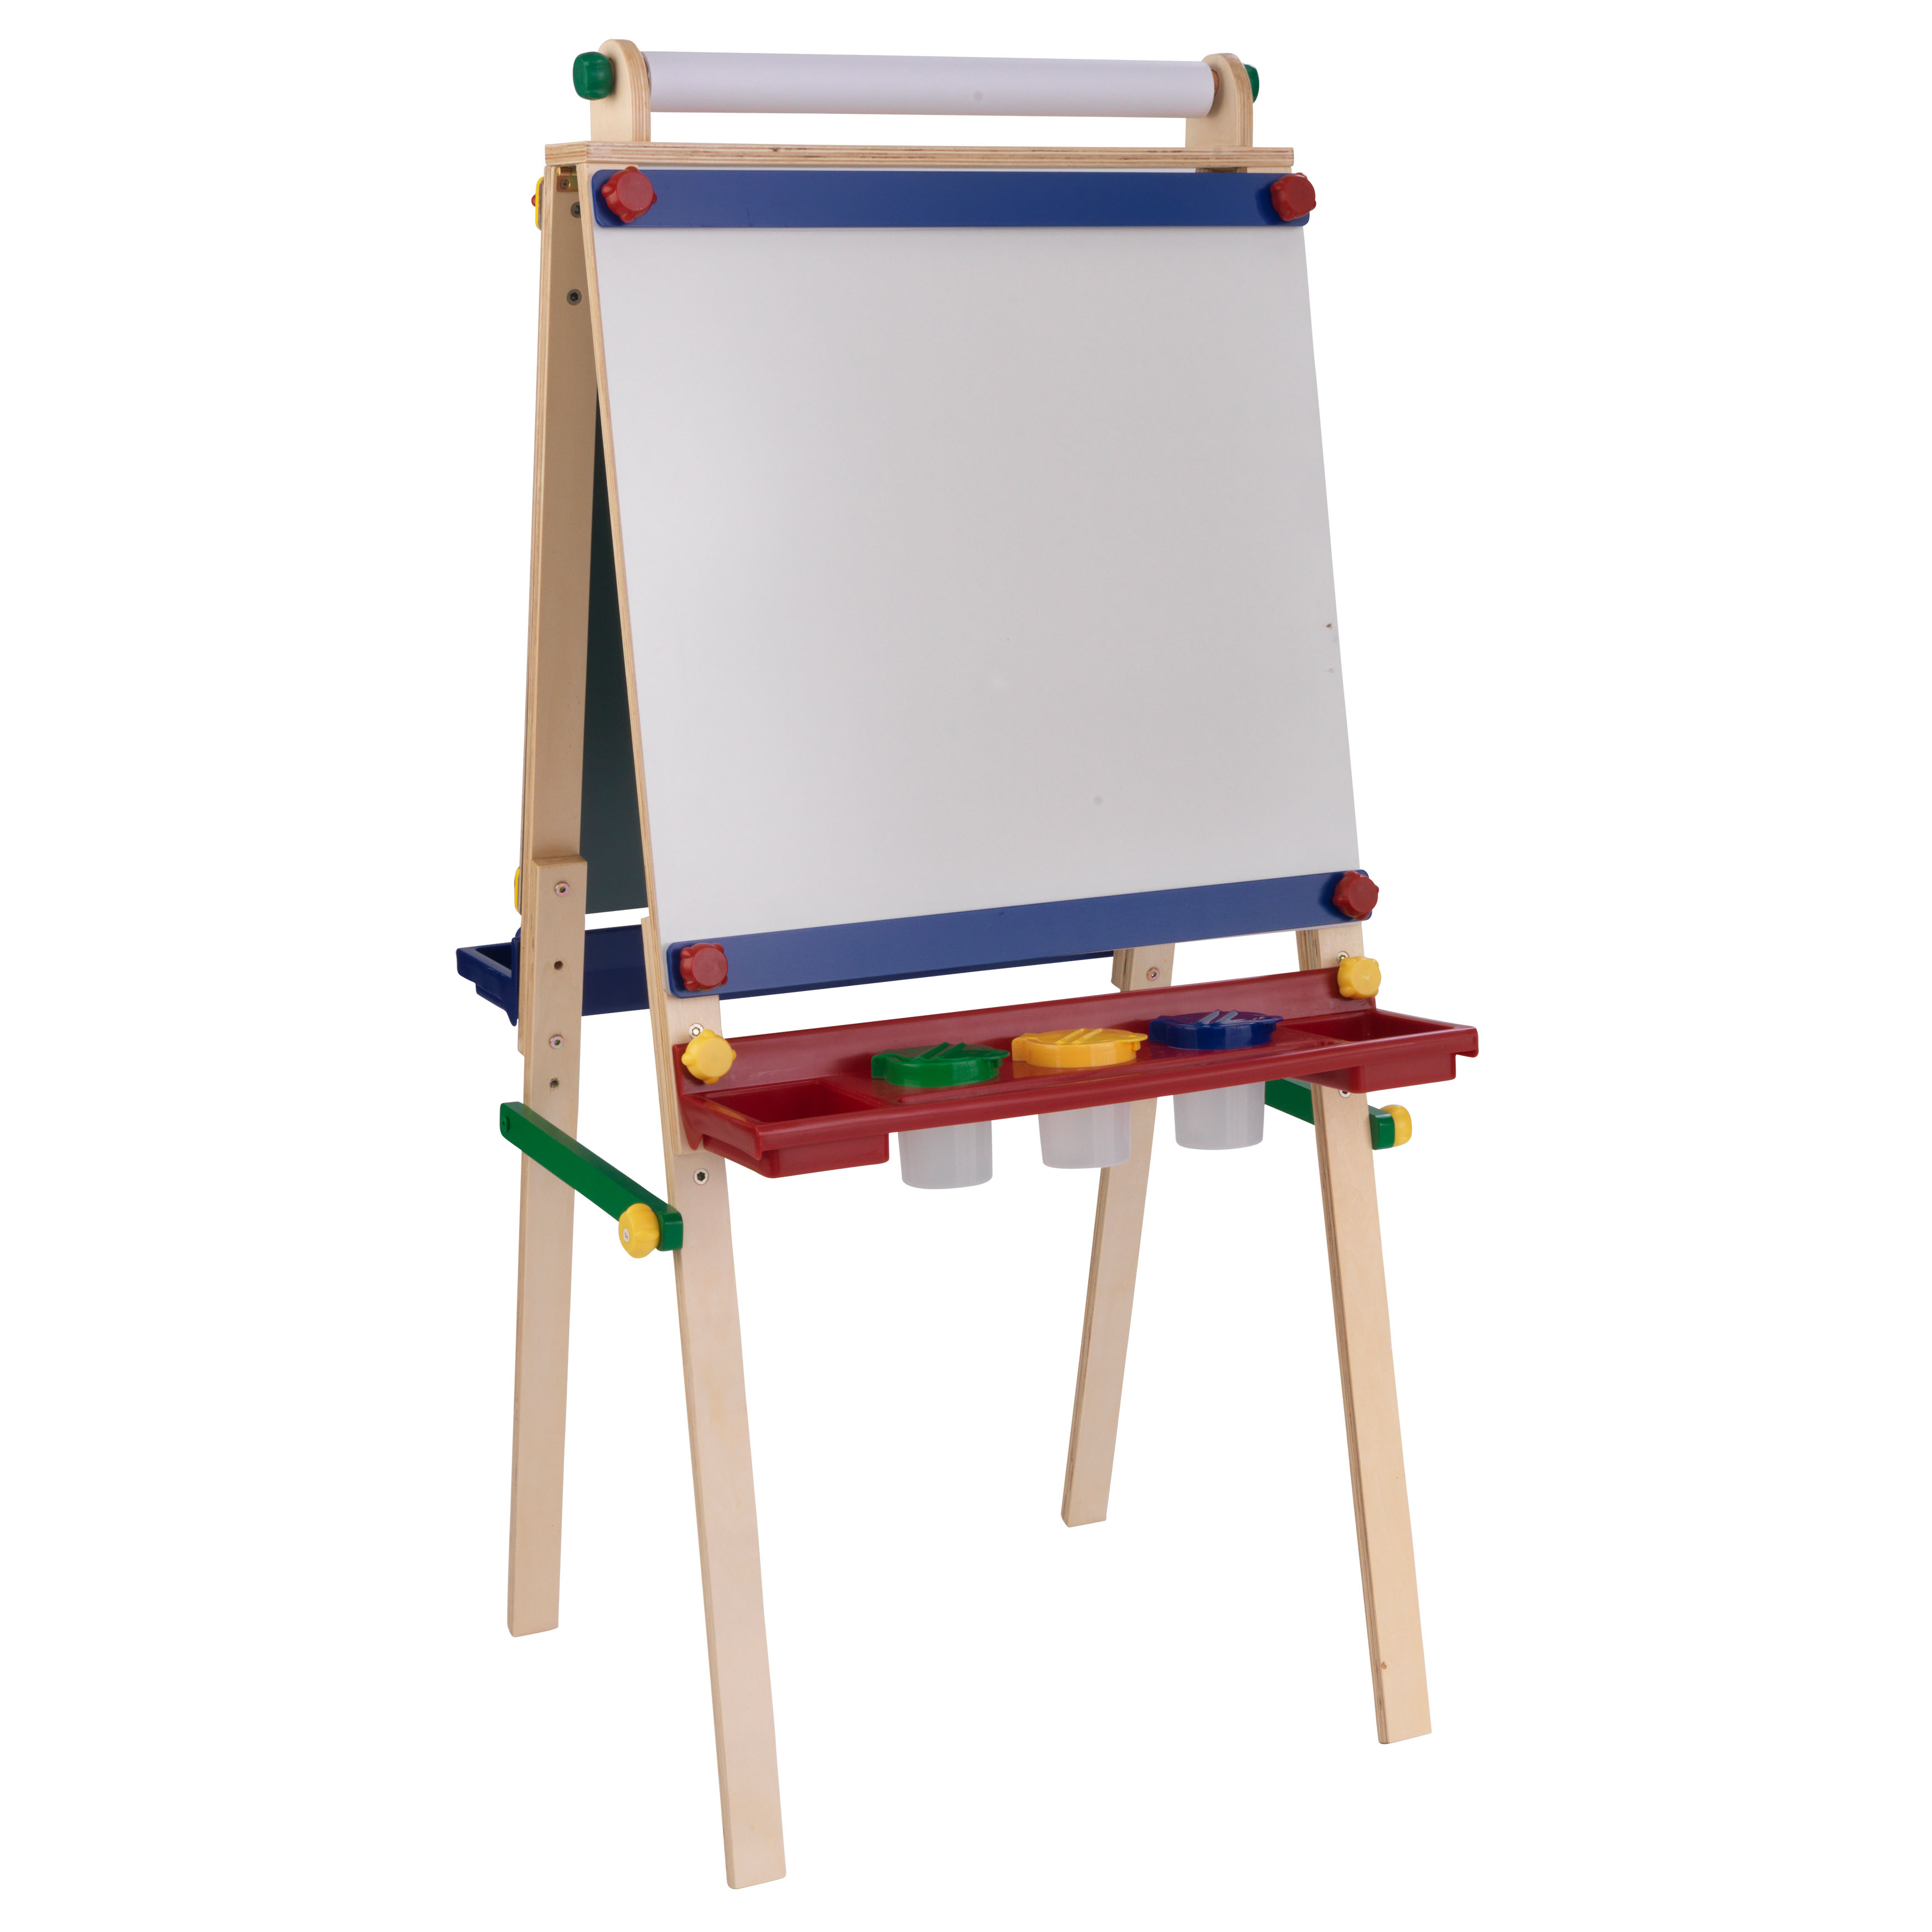 KidKraft Wooden Artist Easel with Paper Roll with Paper Roll, Three Plastic Paint CUps and Two Storage Trays